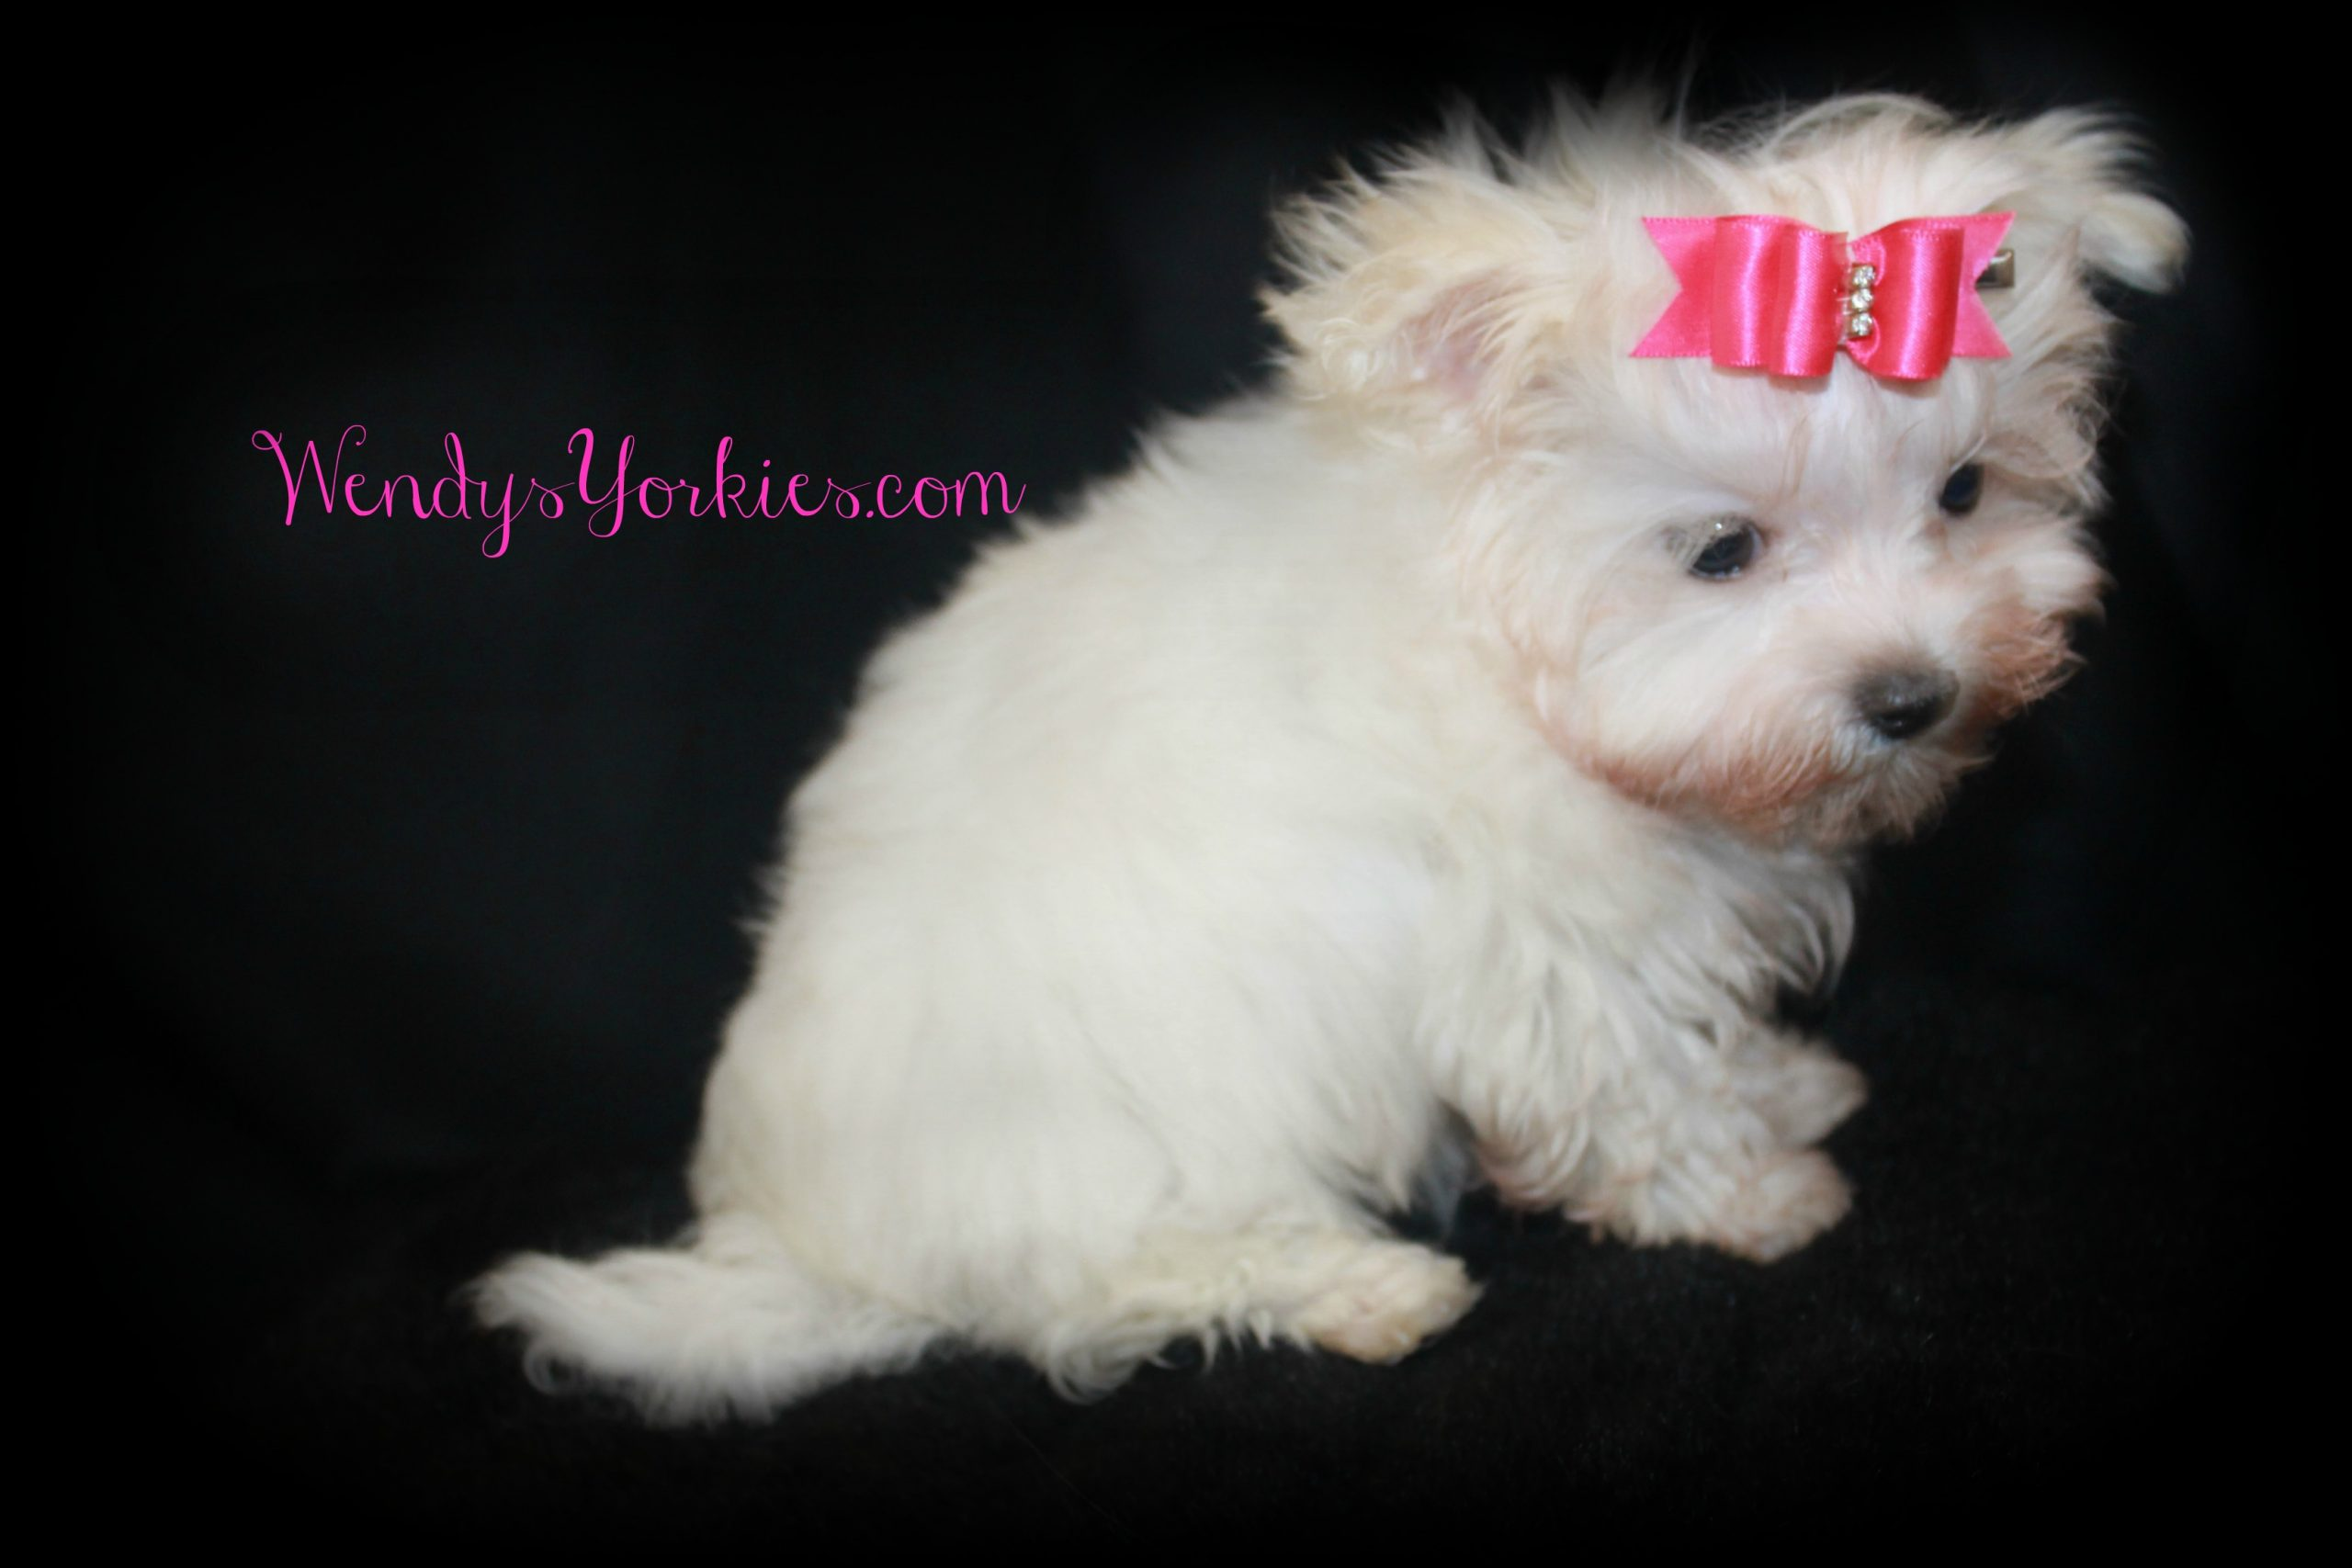 Female Maltese puppy for sale, Snowy,WendysYorkies.com